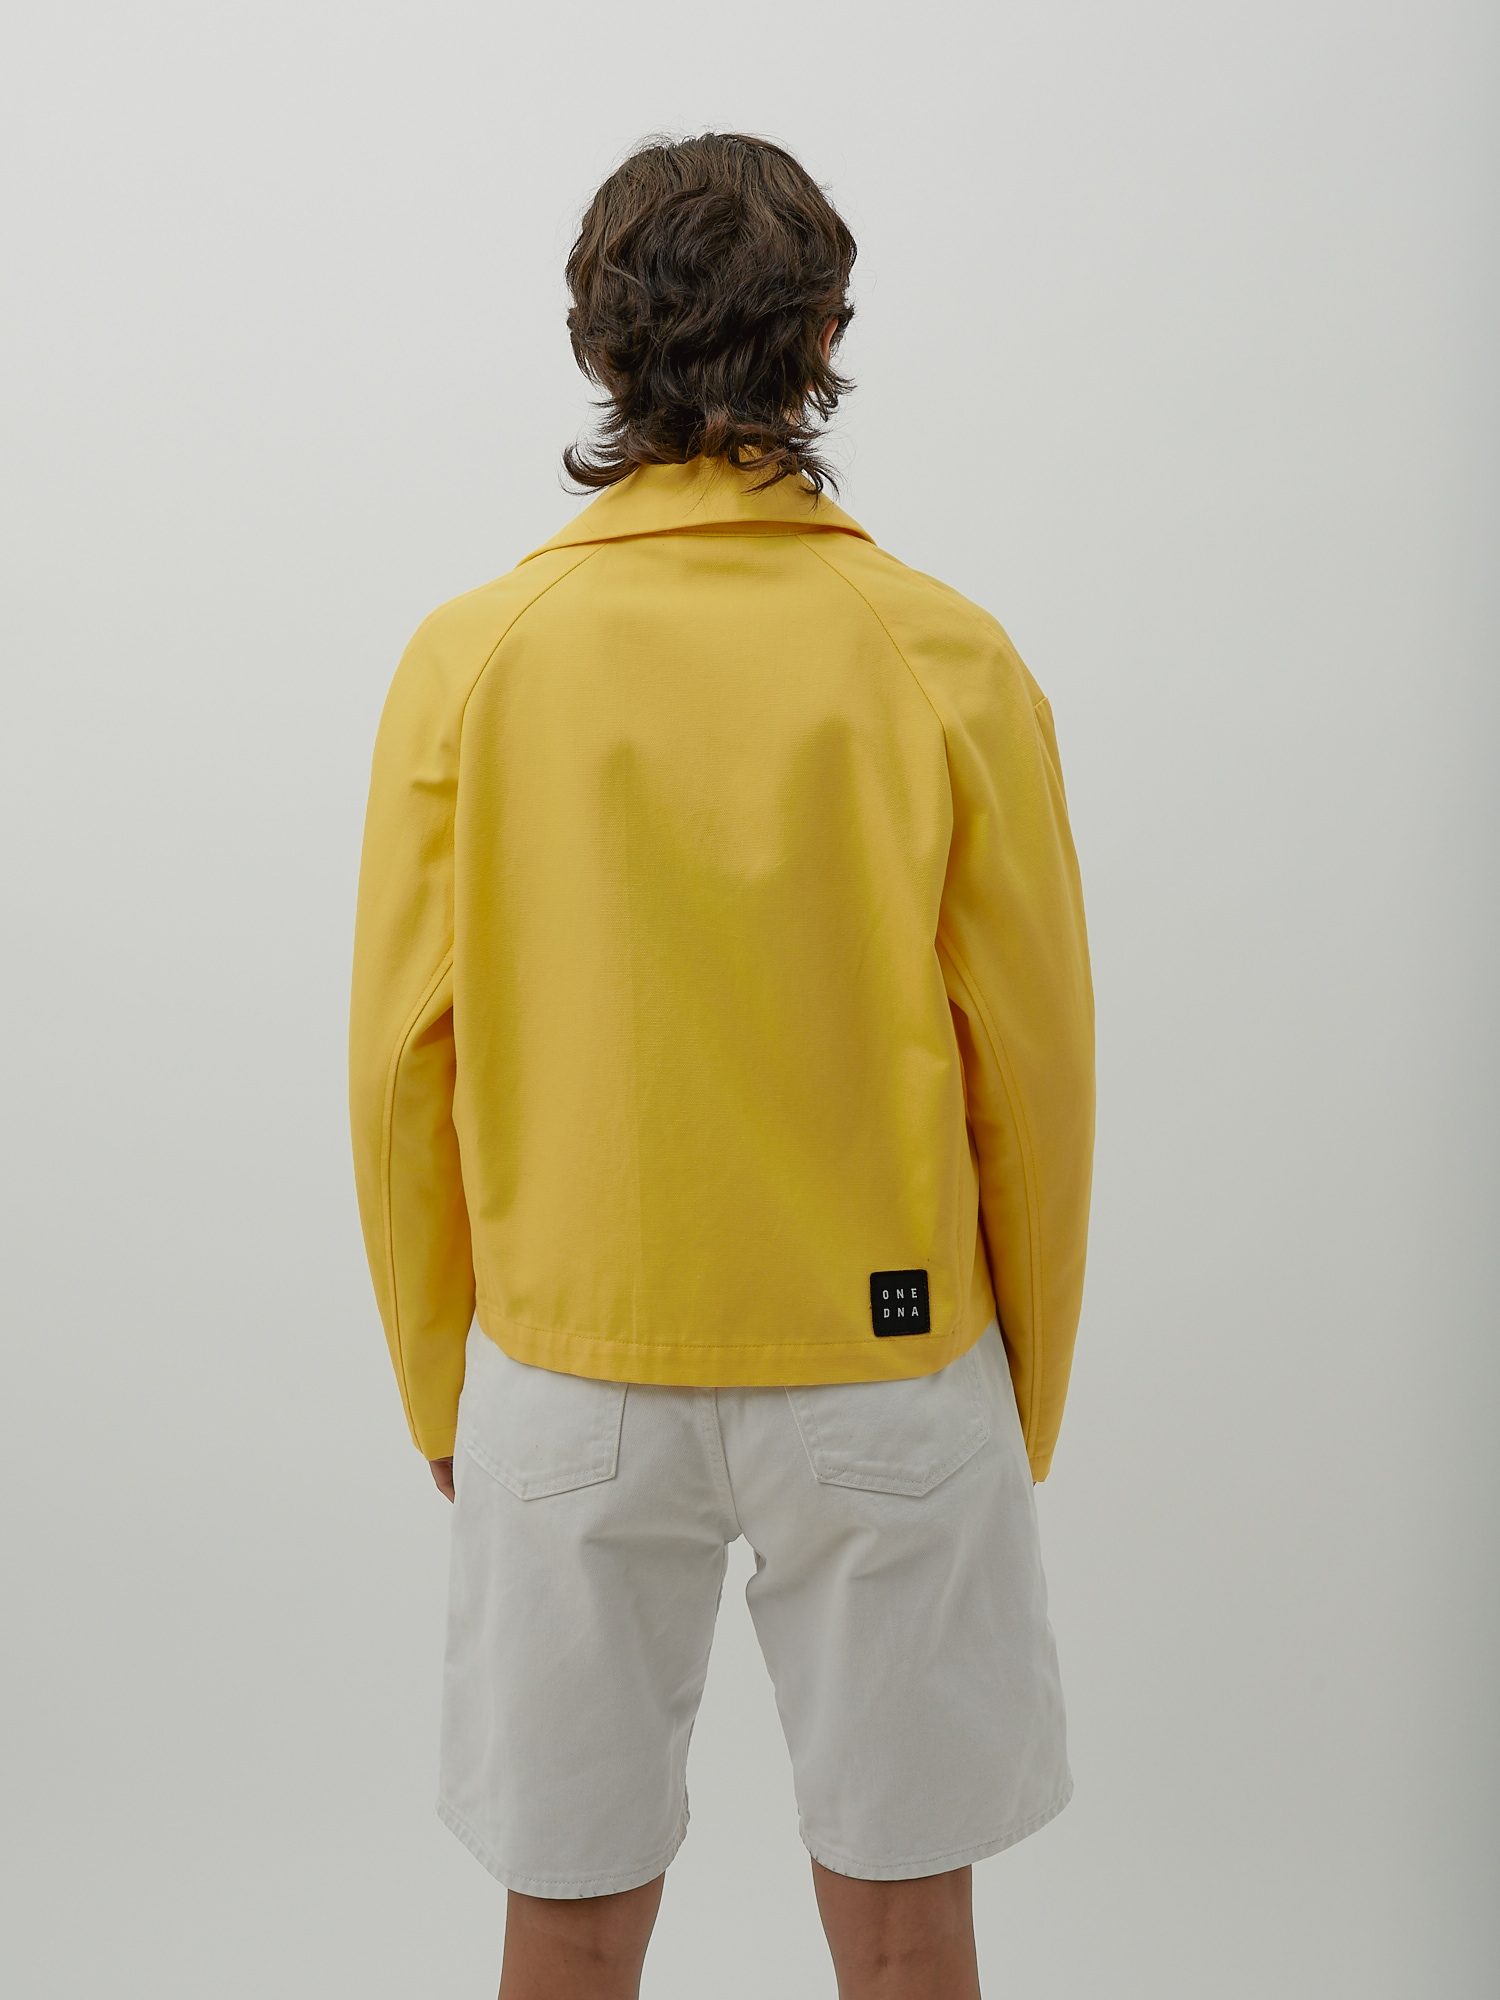 Gender Neutral Jacket in Yellow Canvas by One DNA